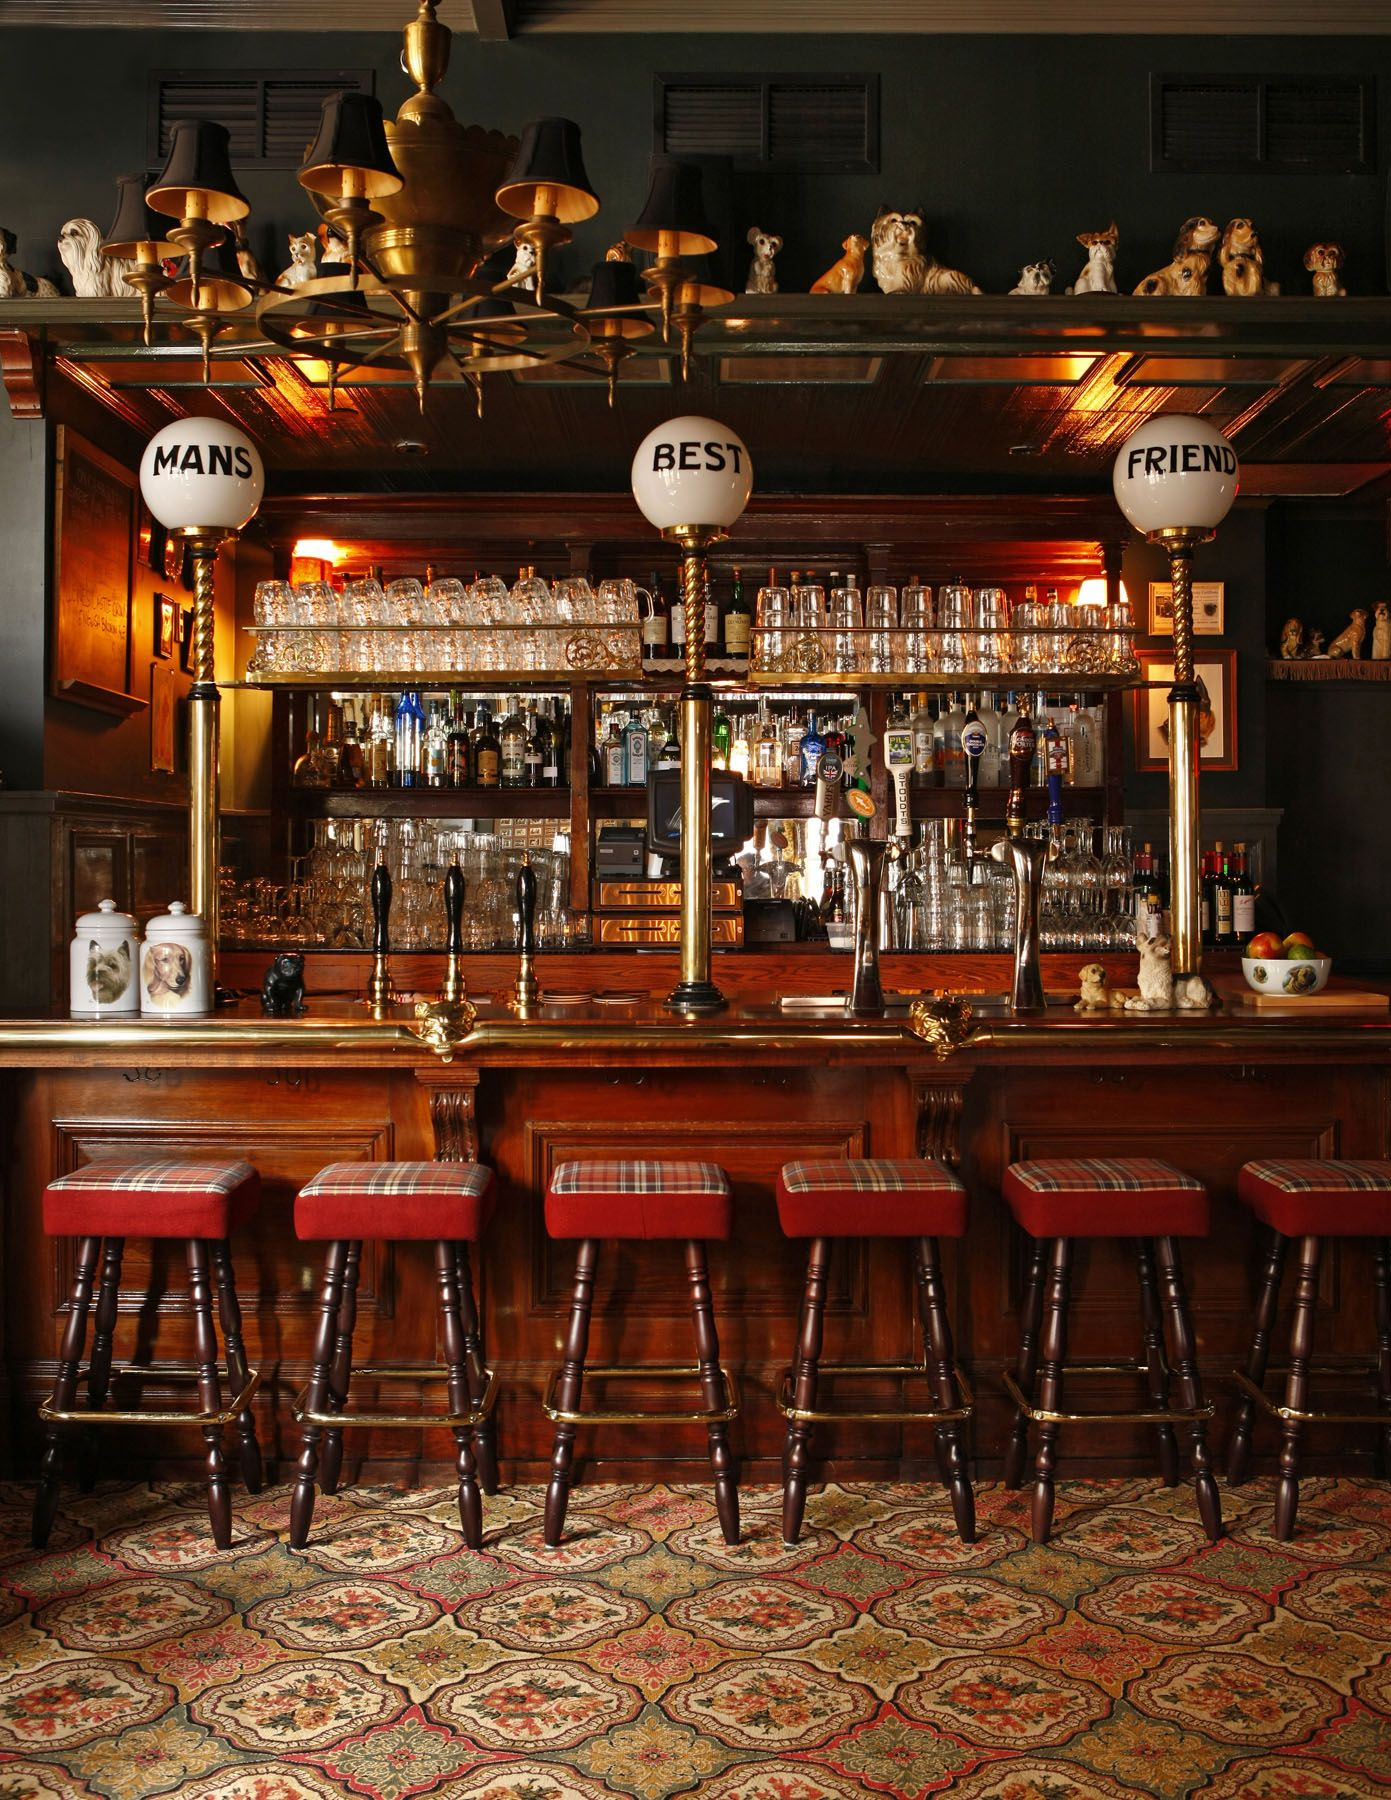 Dog Room Bar at The Dandelion. | All Things Dog | Pinterest | Dog ...